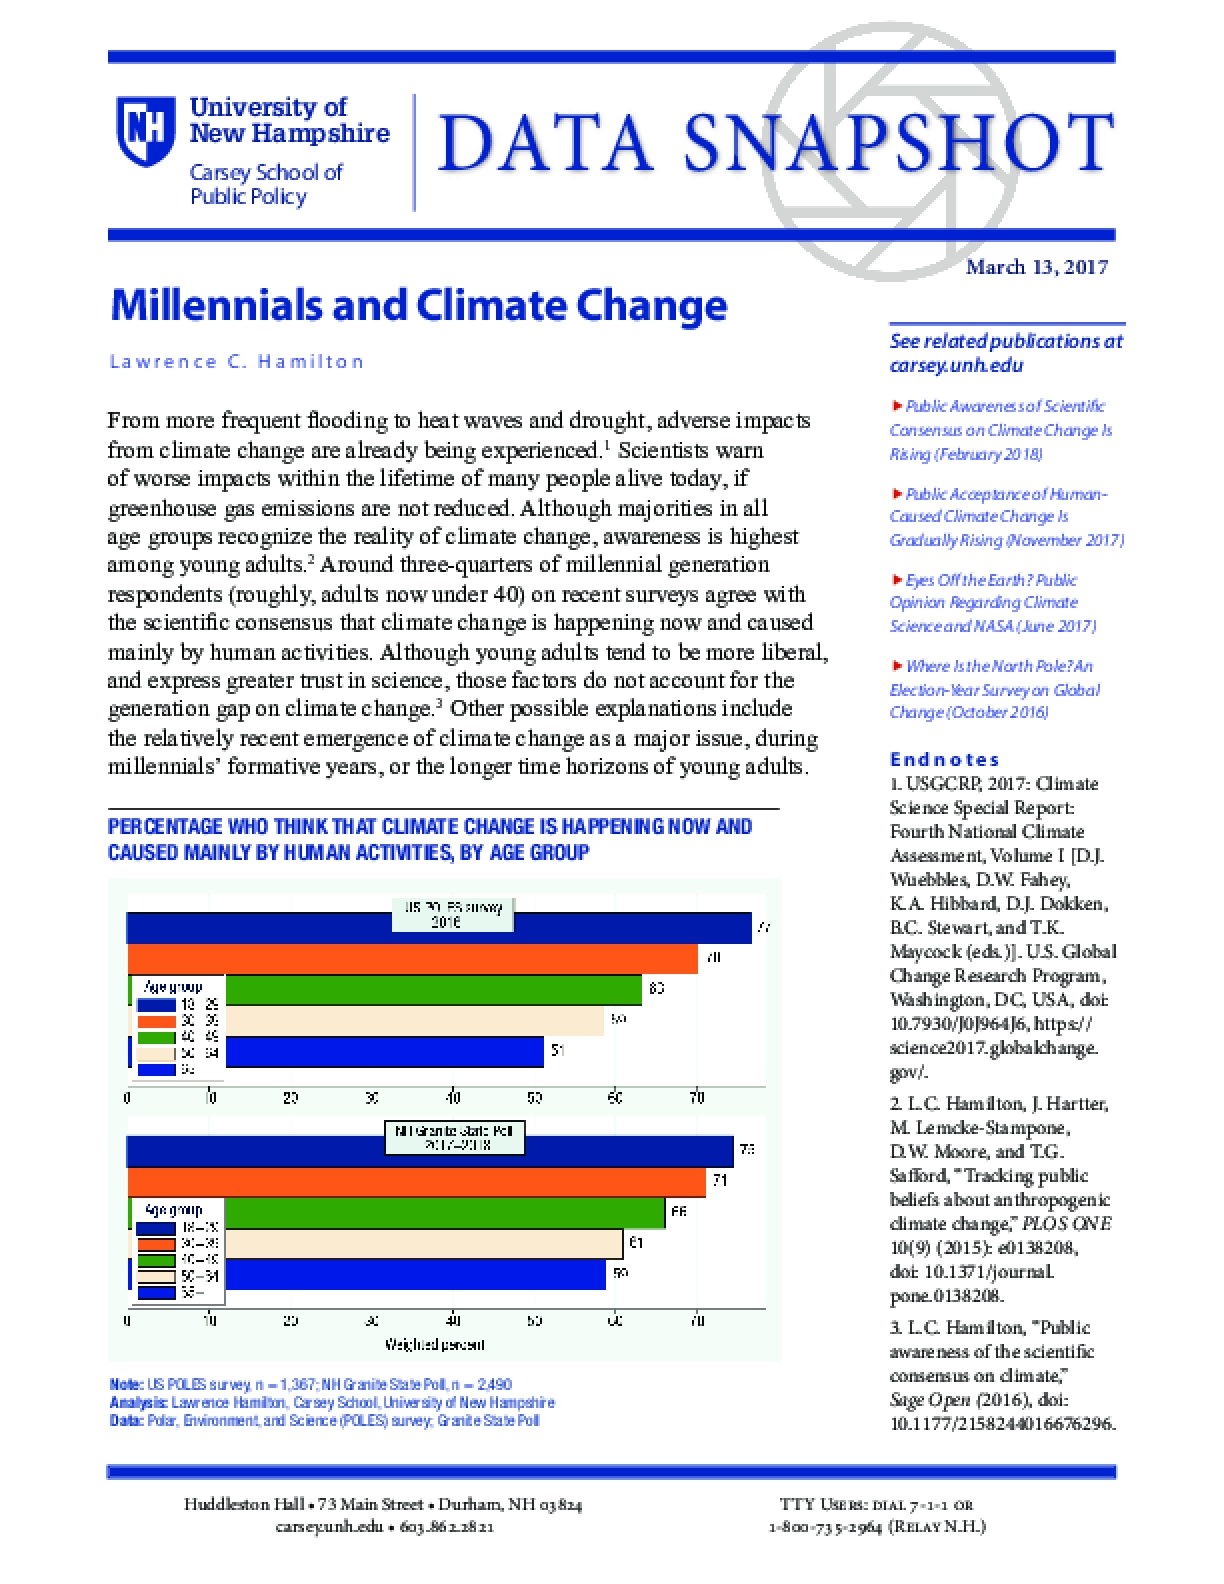 Data Snapshot: Millennials and Climate Change